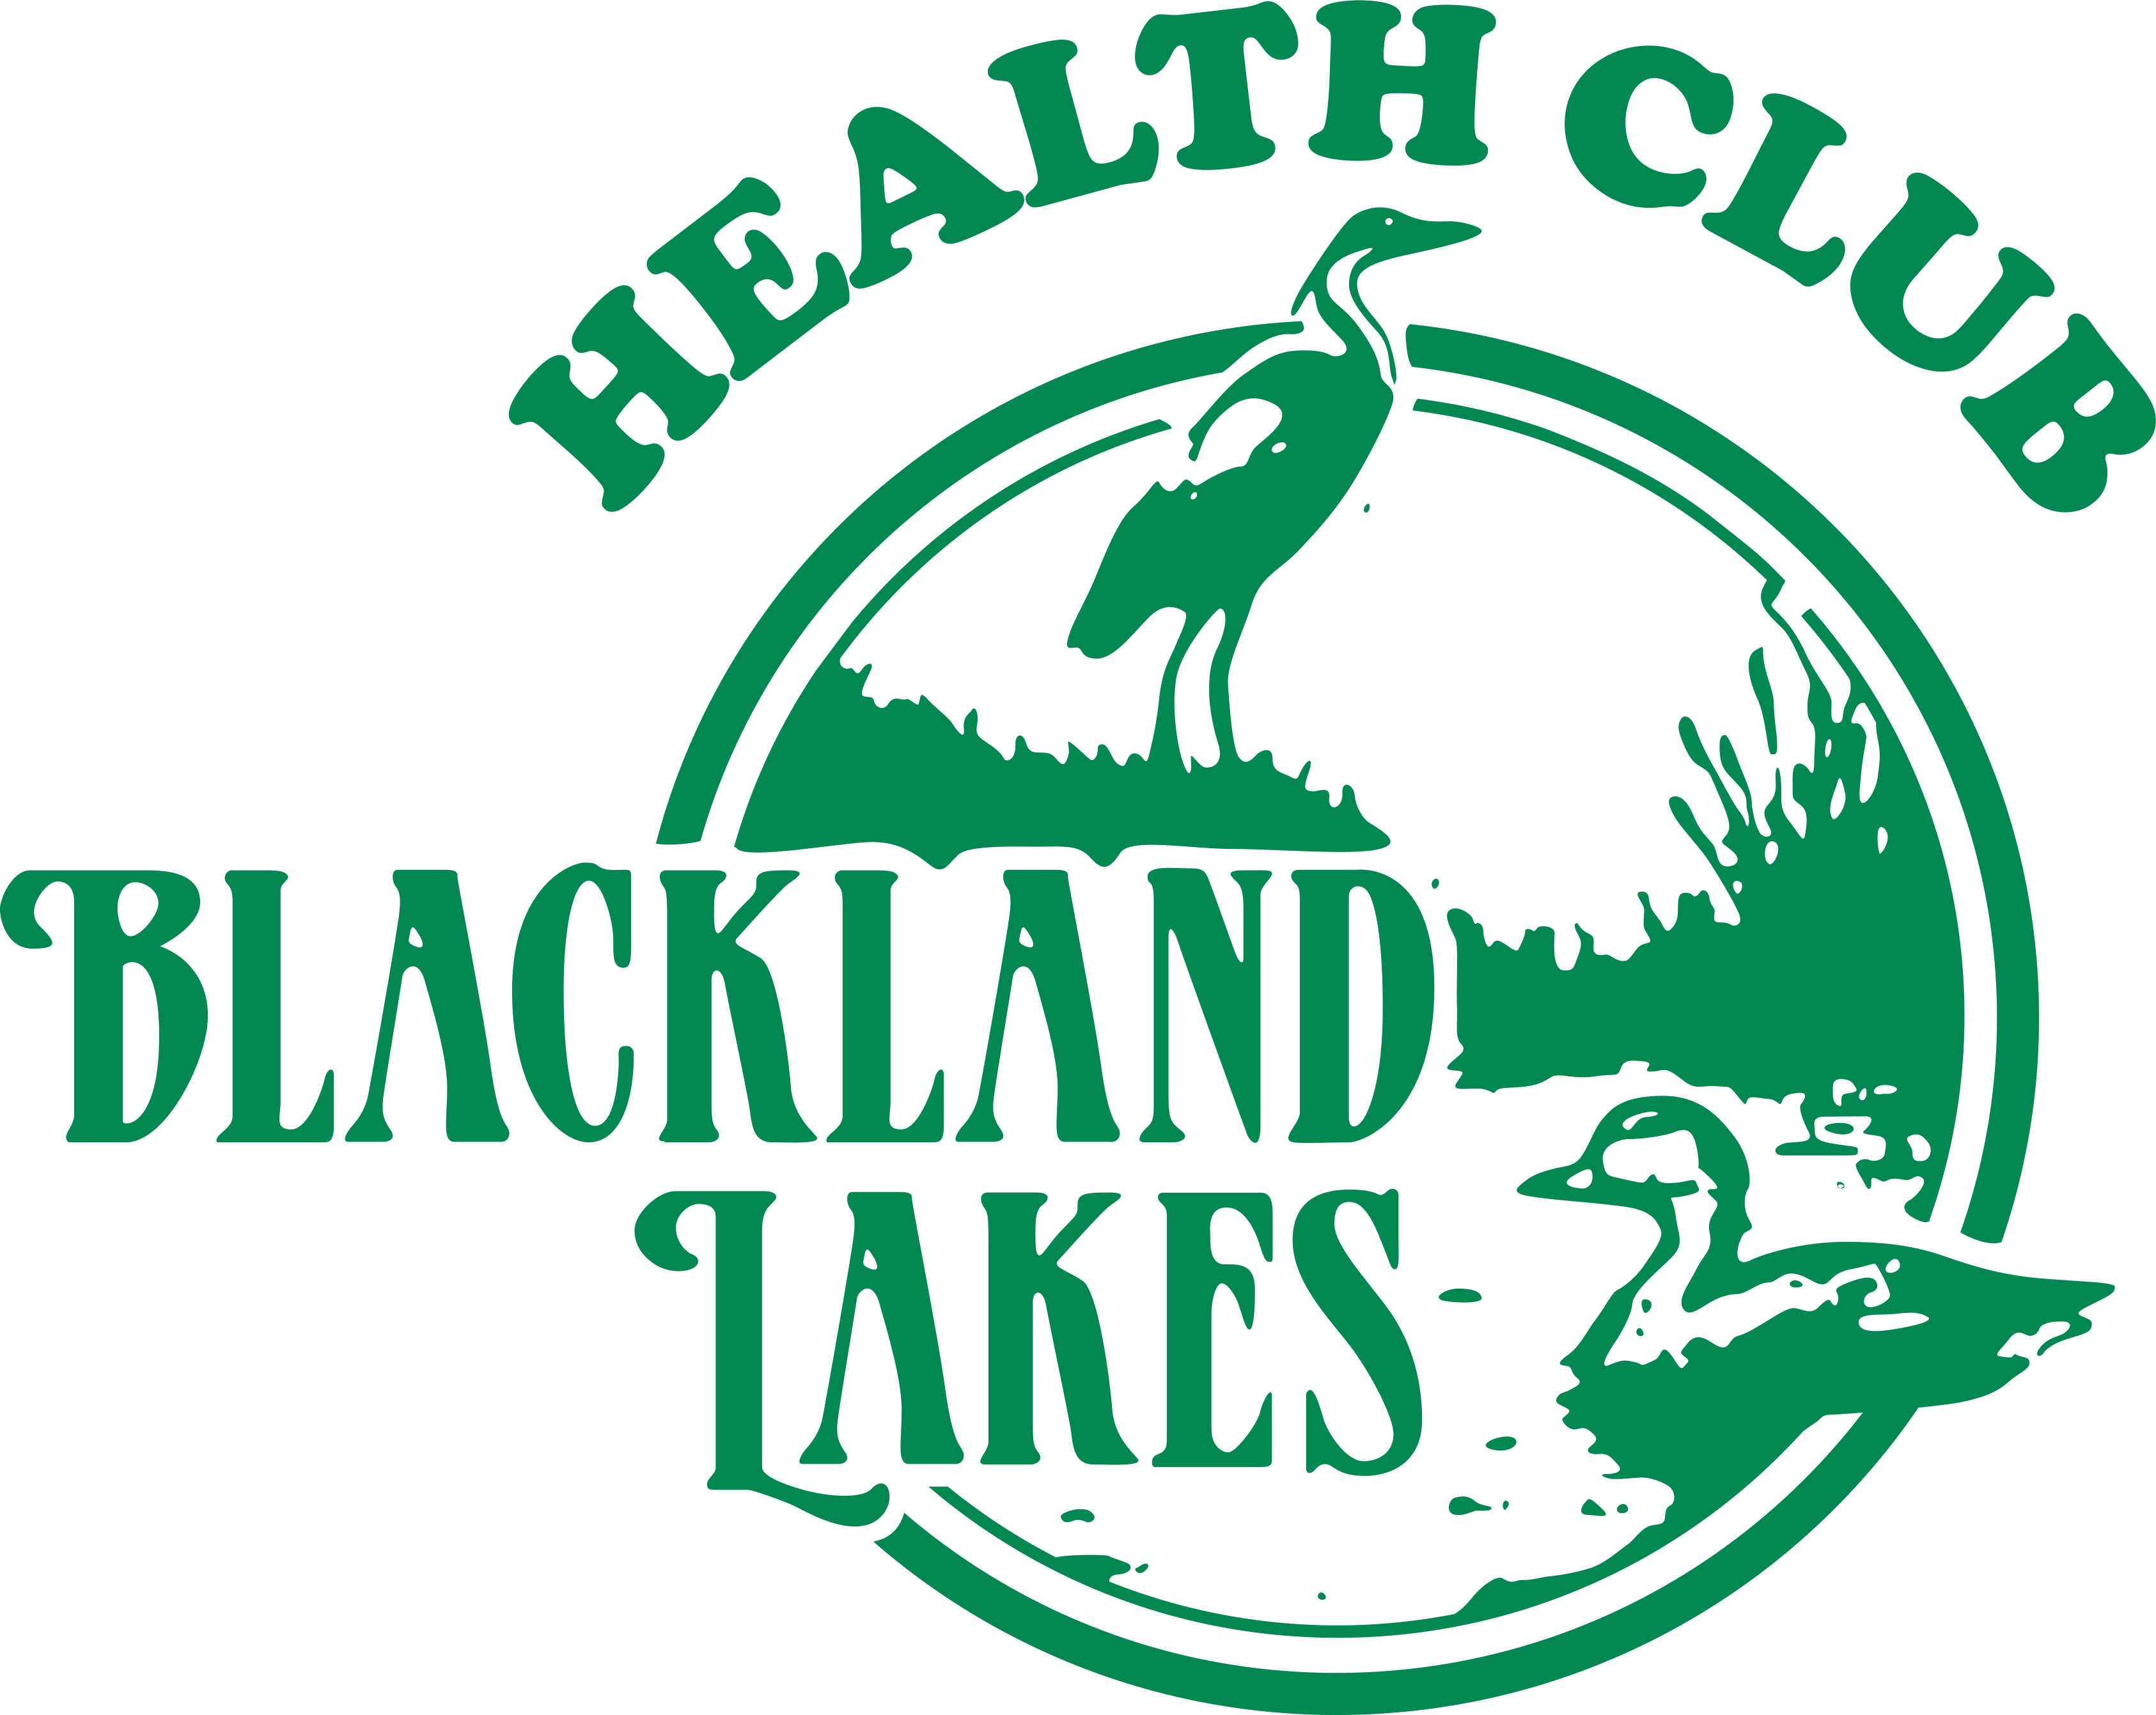 Blackland Lakes